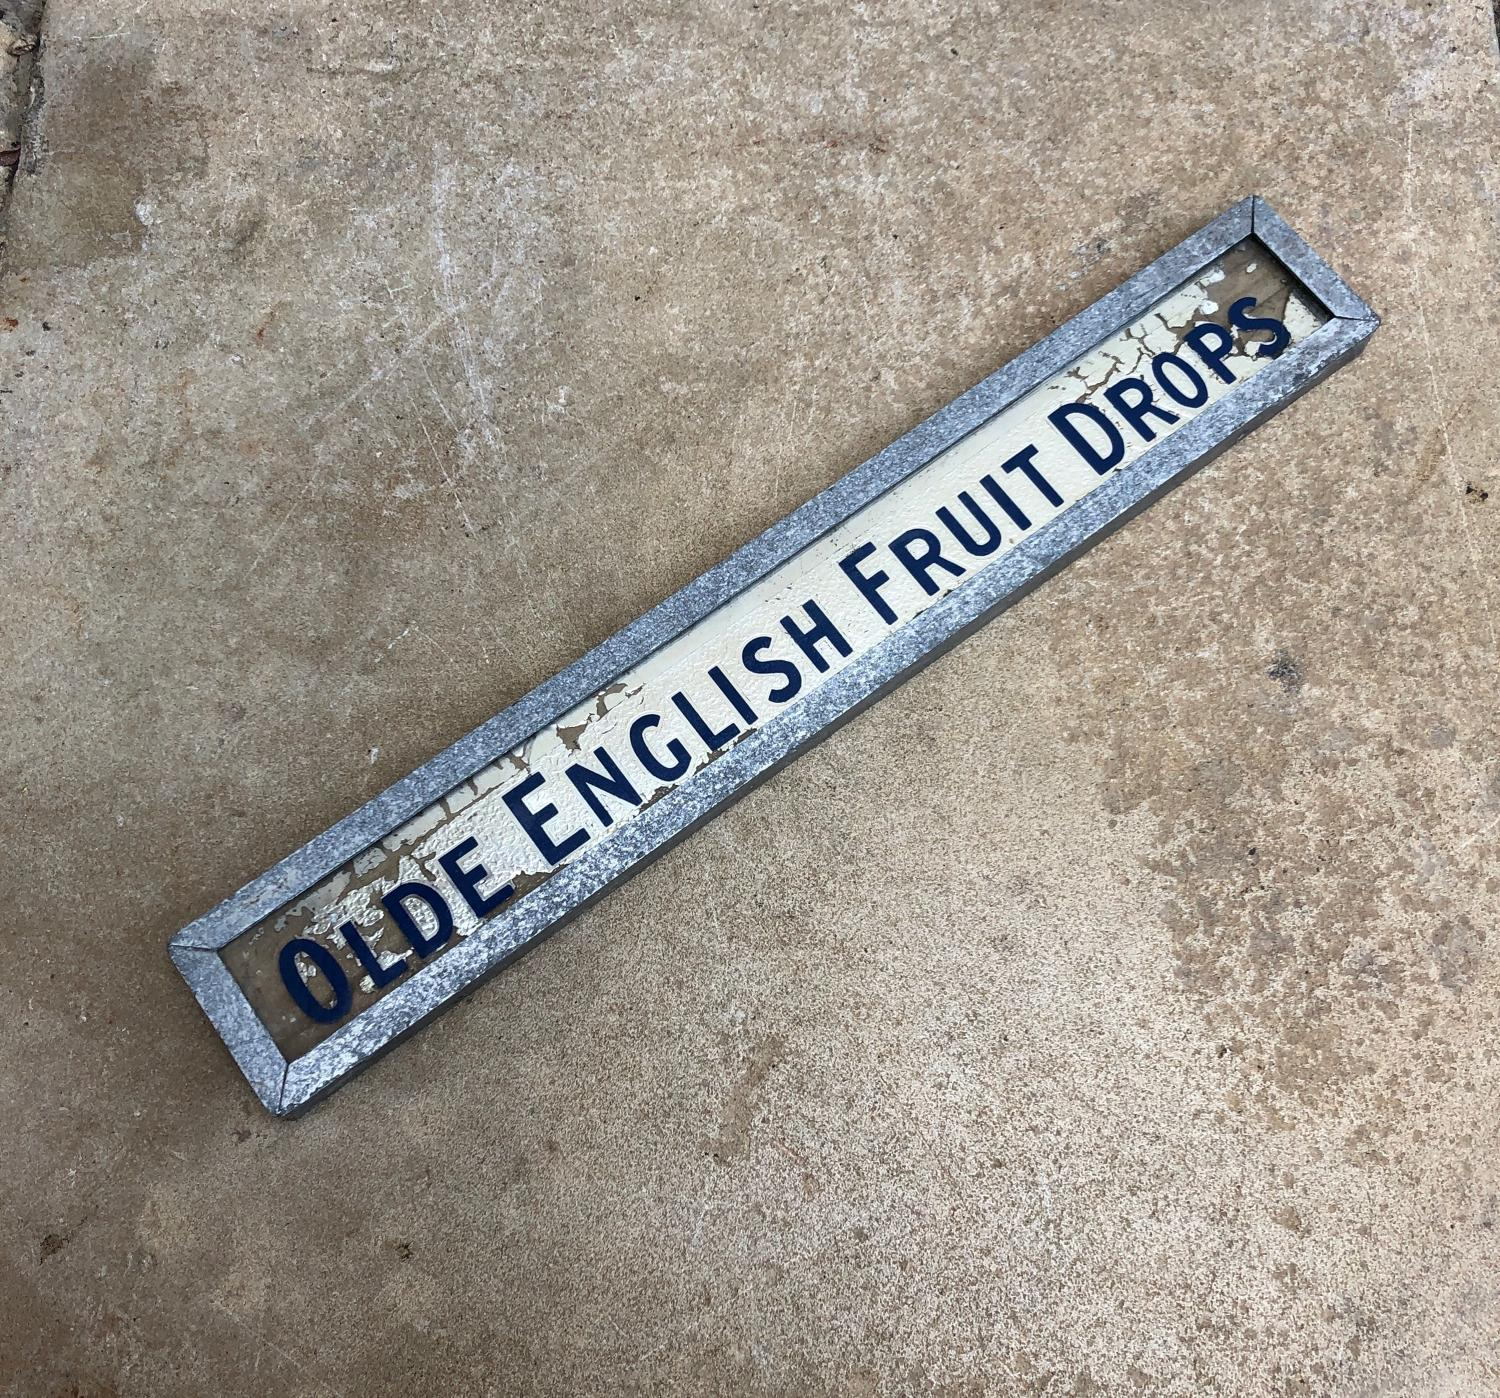 1940s Shops Small Advertising Sign - Olde English Fruit Drops